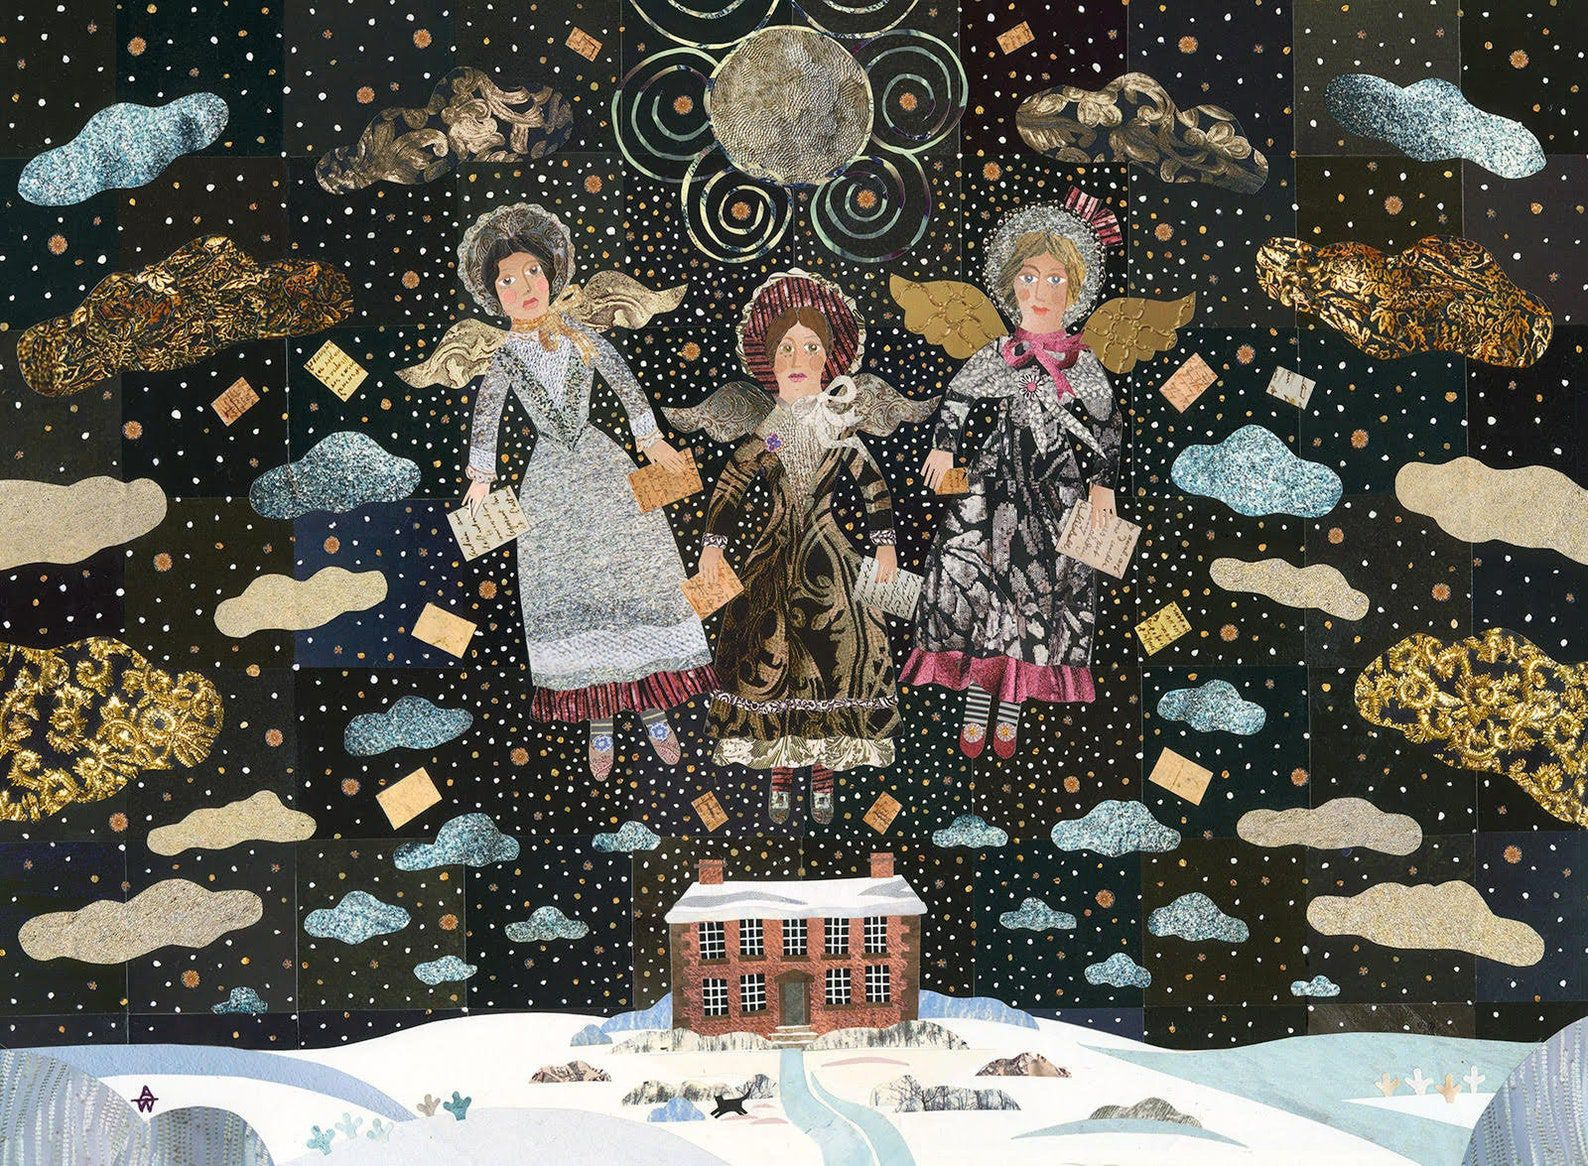 A dark starry sky depicting the Bronte sisters as angels and their works floating about their parsonage home at wintertime, done in beautiful blacks, browns, and blues collage style.